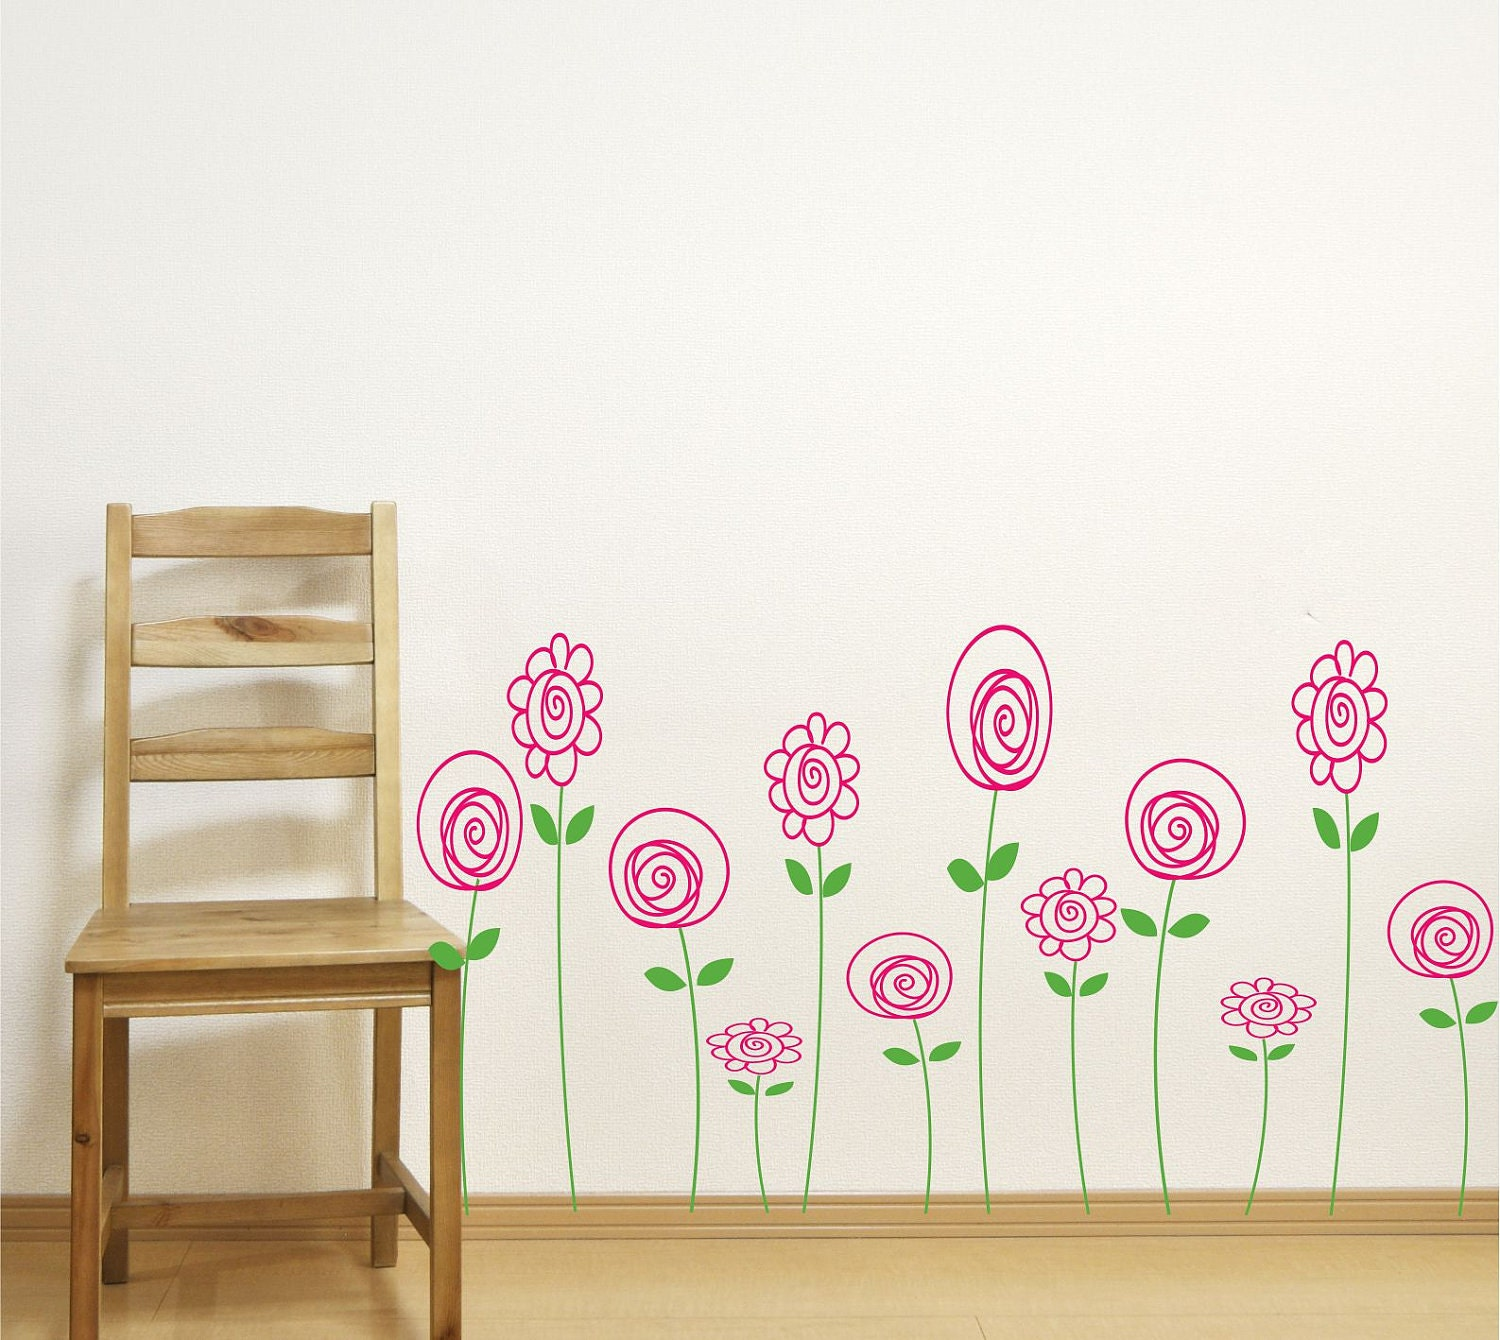 Childrens Wall Decals Flower Decals Doodle Flowers Kids